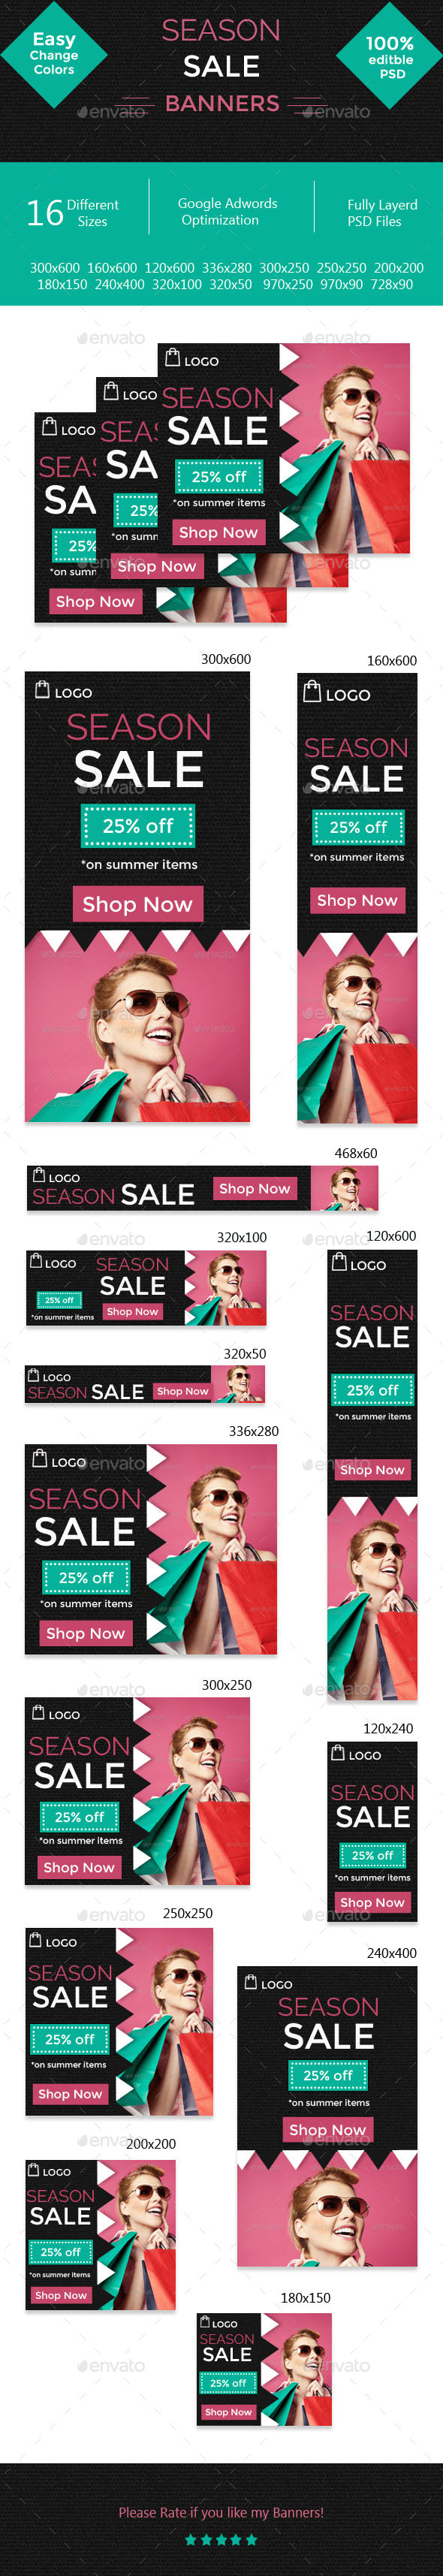 GraphicRiver Season Sale Banner 10522814